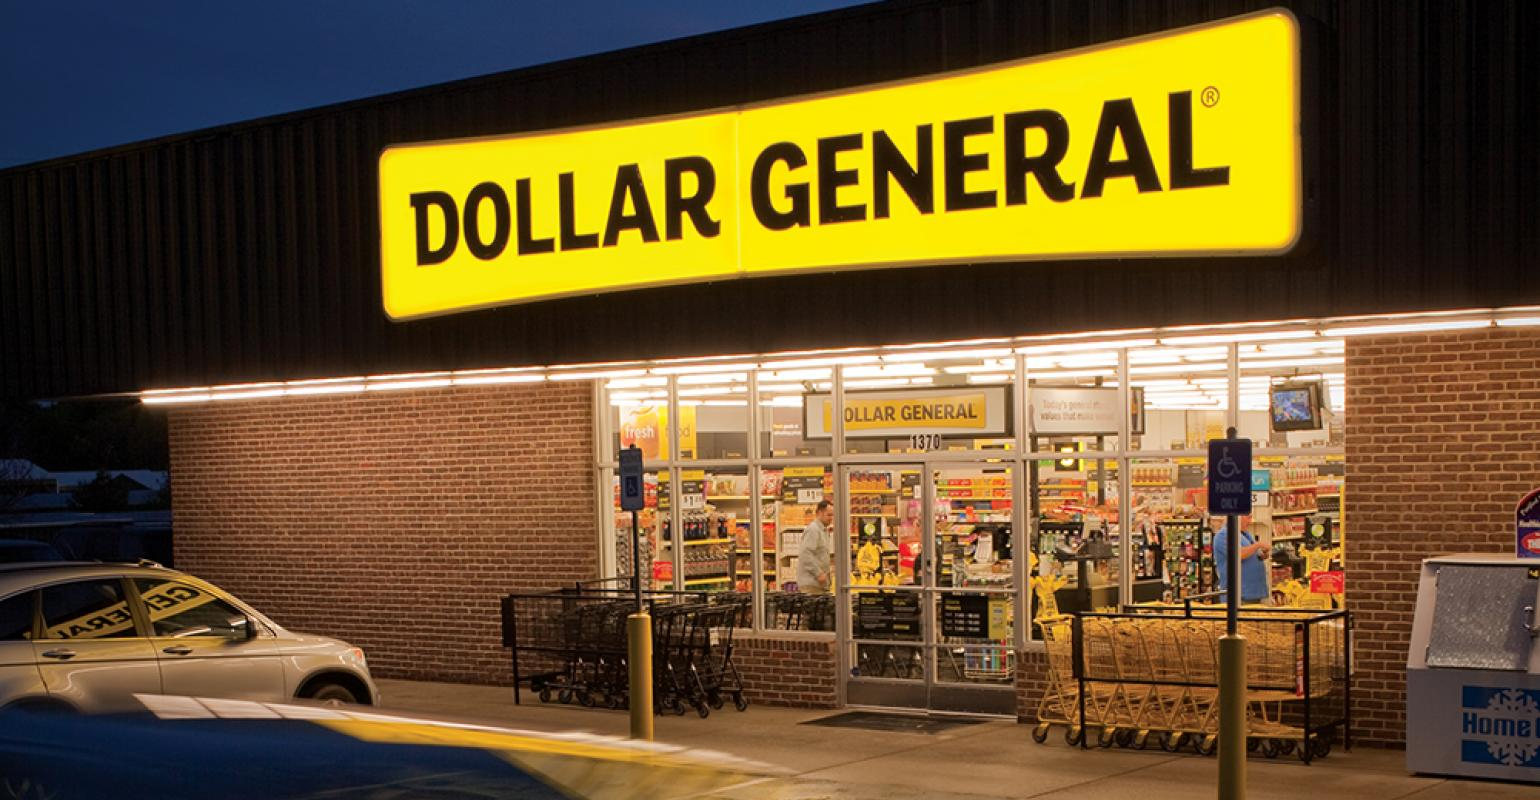 Dollar General is cheap, popular and a robbery magnet